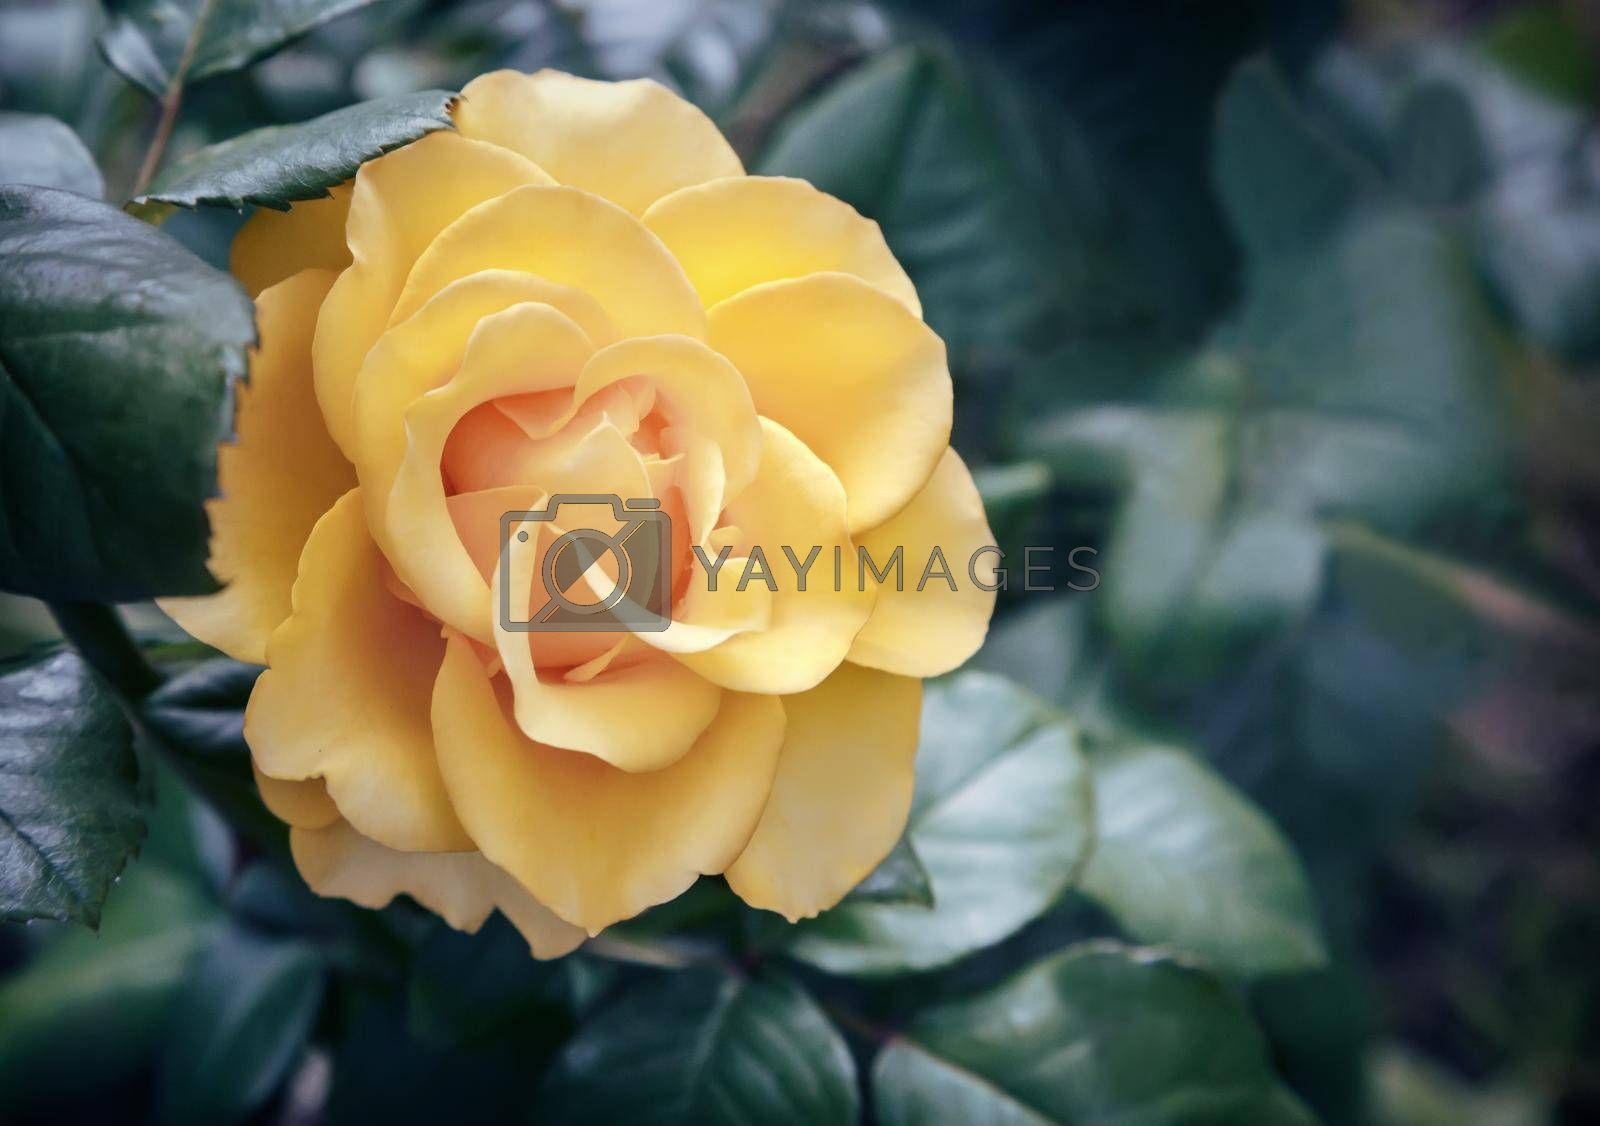 Beautiful yellow flower of hybrid tea rose blooming in the garden . Photographed close-up .